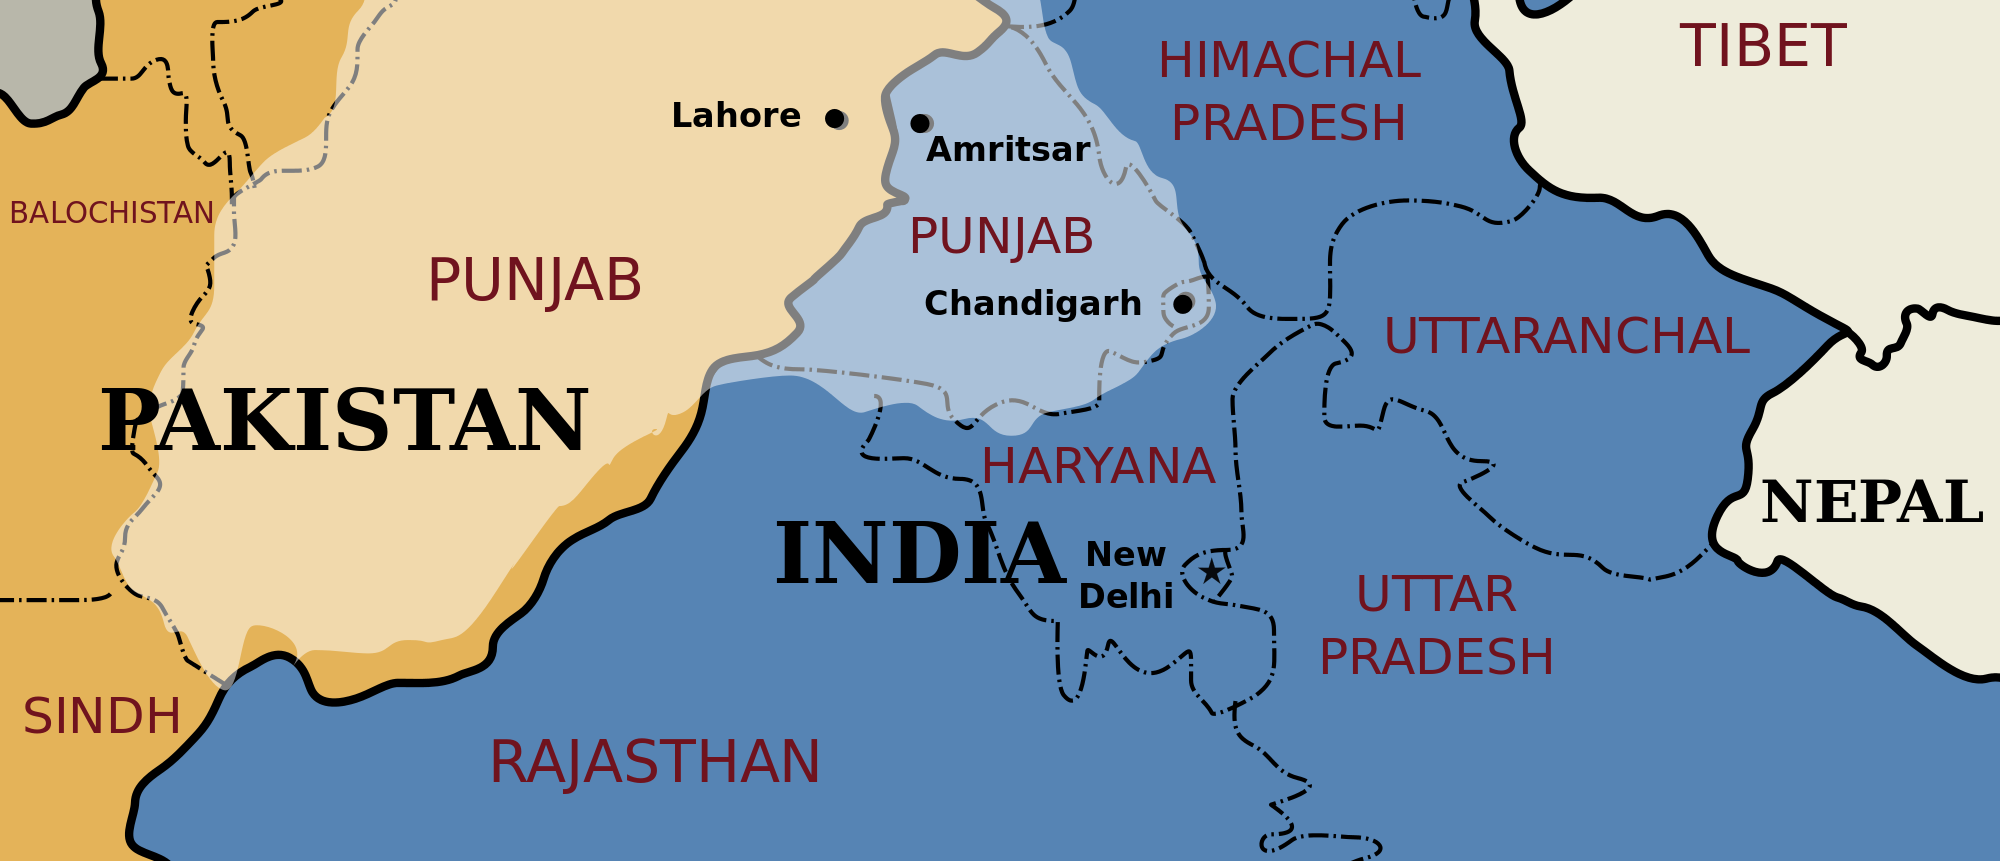 A map showing the borders between Pakistan and India. Pakistan is represented in yellow, and India in blue.